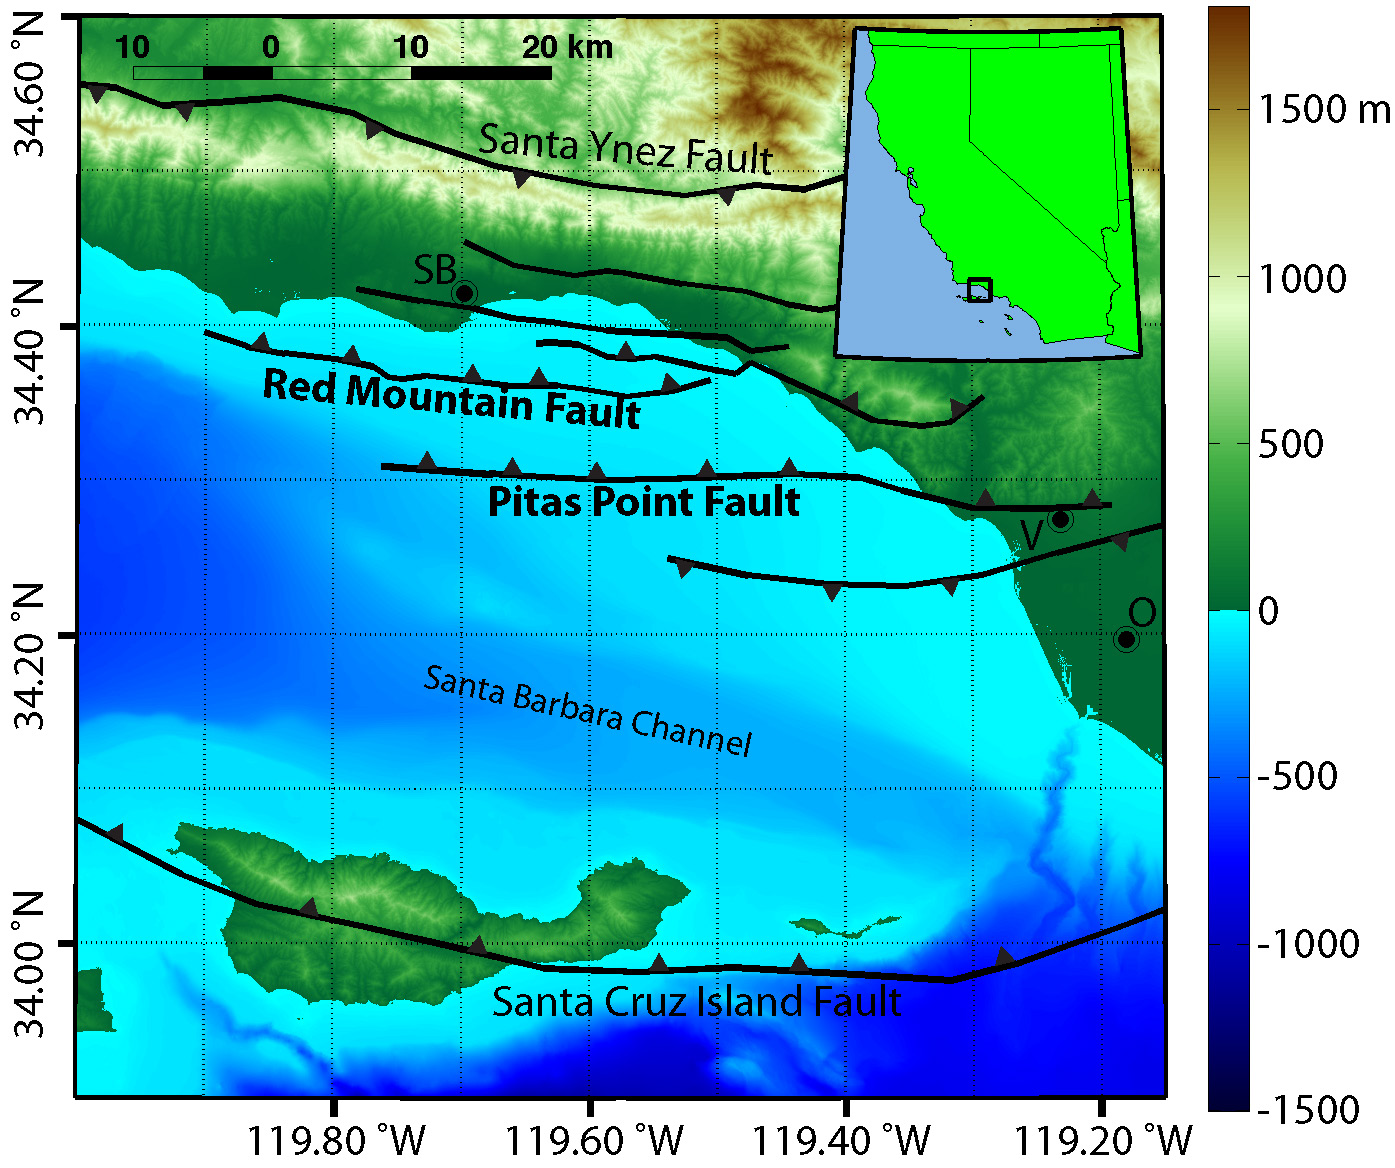 models show significant tsunami strength for Ventura and Oxnard